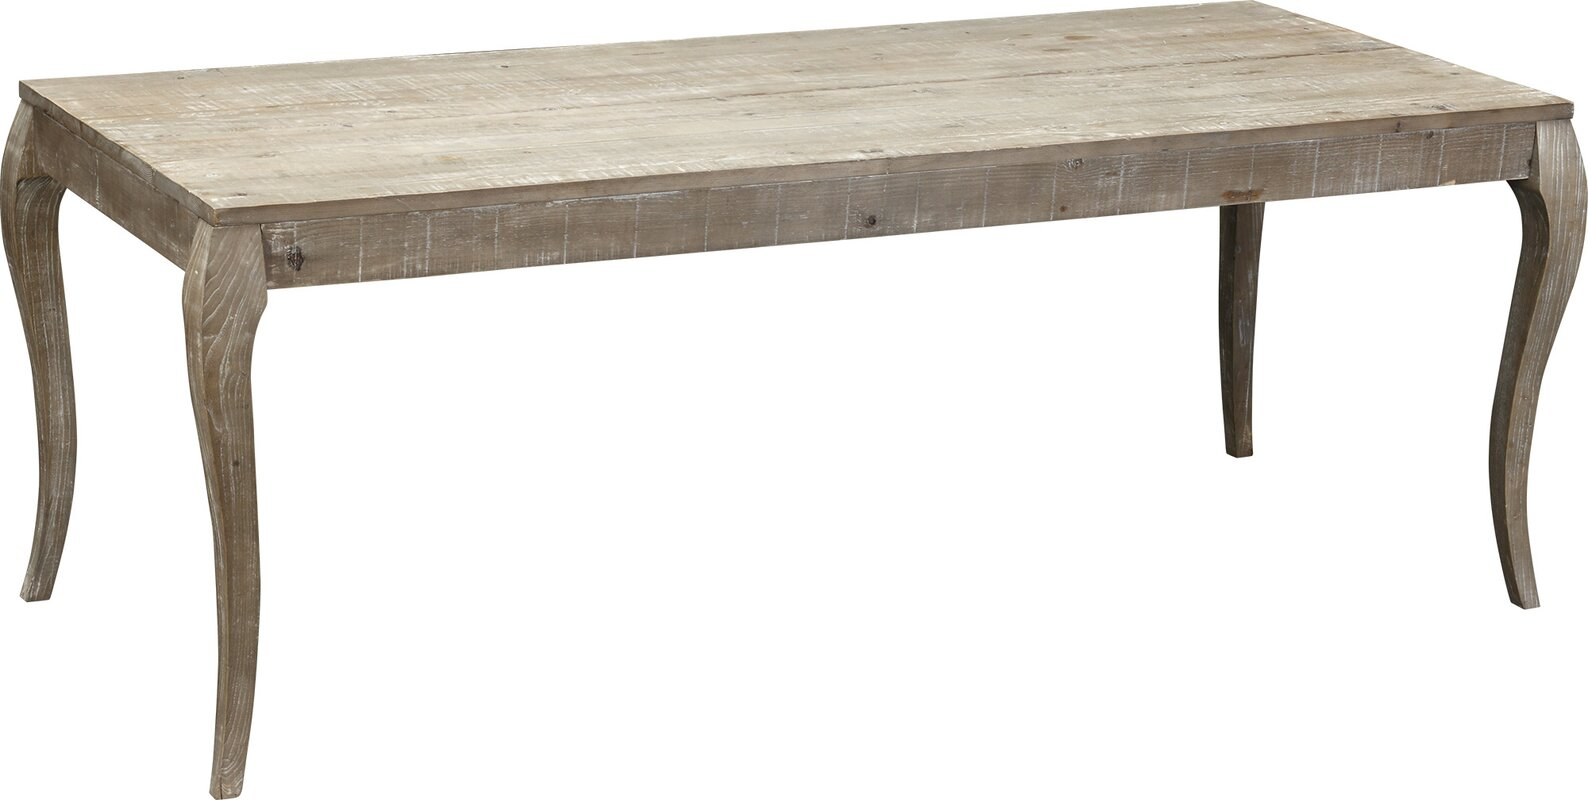 Valerie Reclaimed Pine Wood Dining Table & Reviews